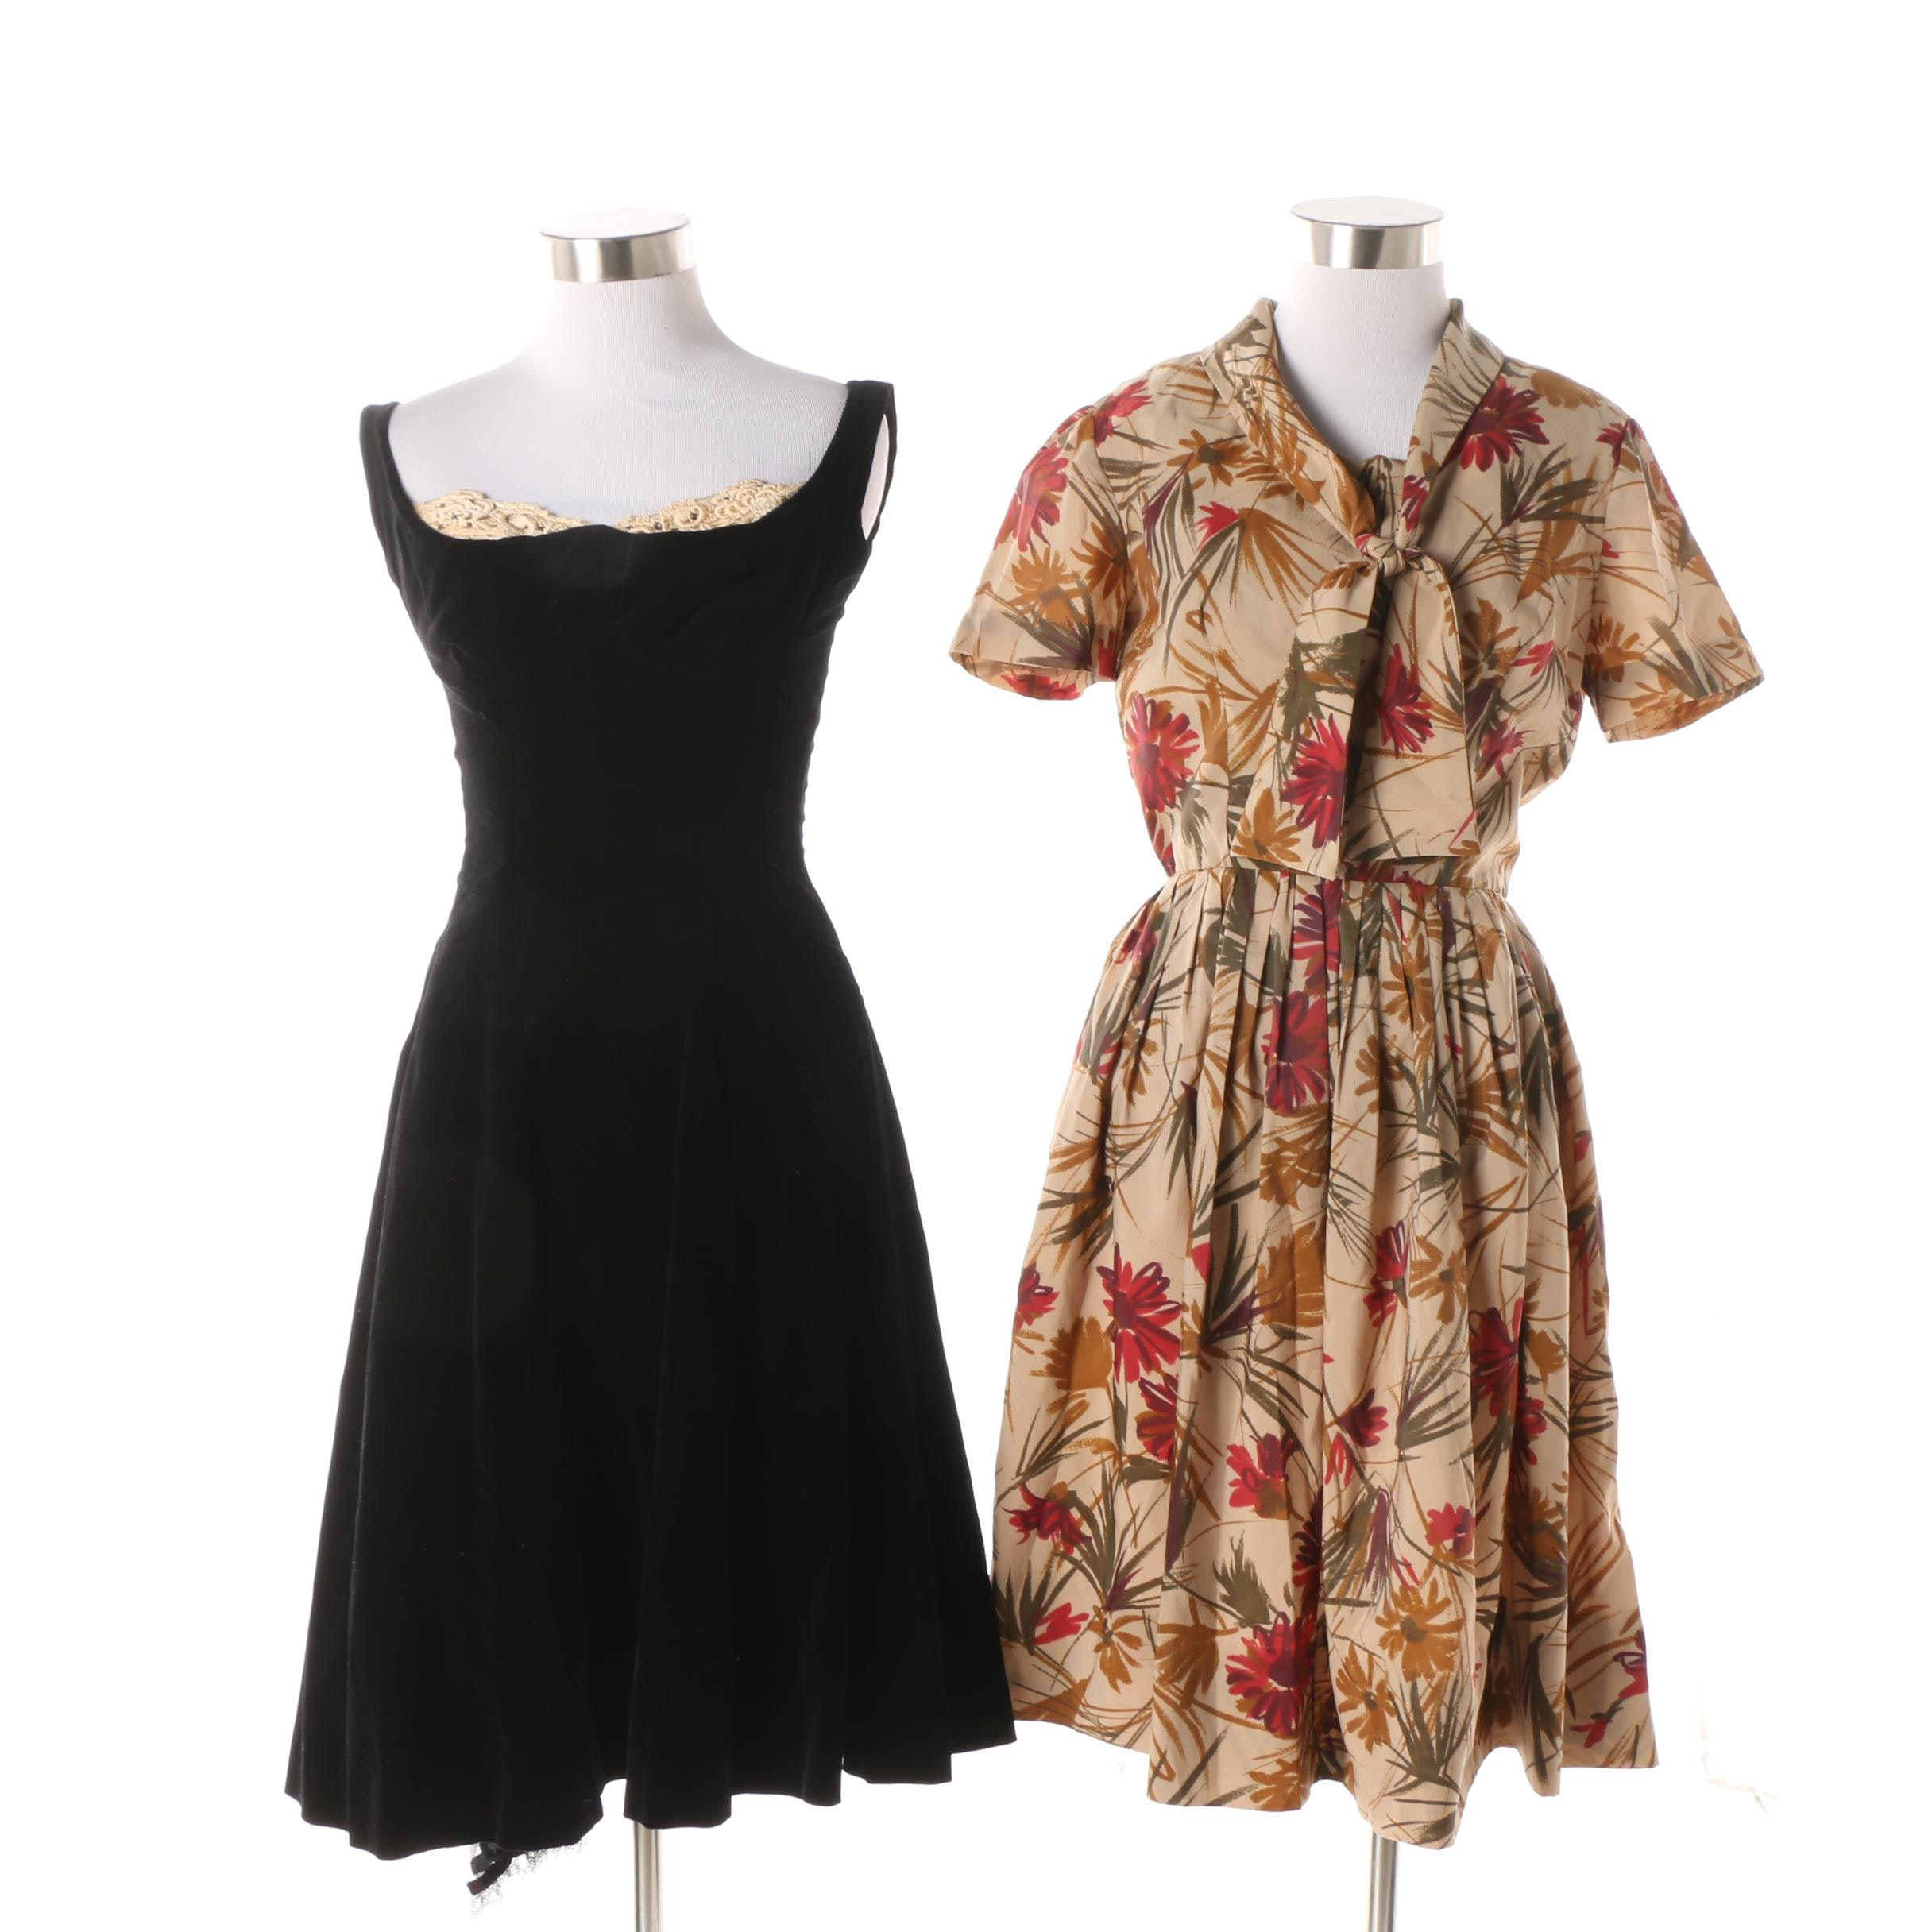 1950s Vintage Sakowitz Velvet Cocktail Dress and Stacy Ames Silk Casual Dress